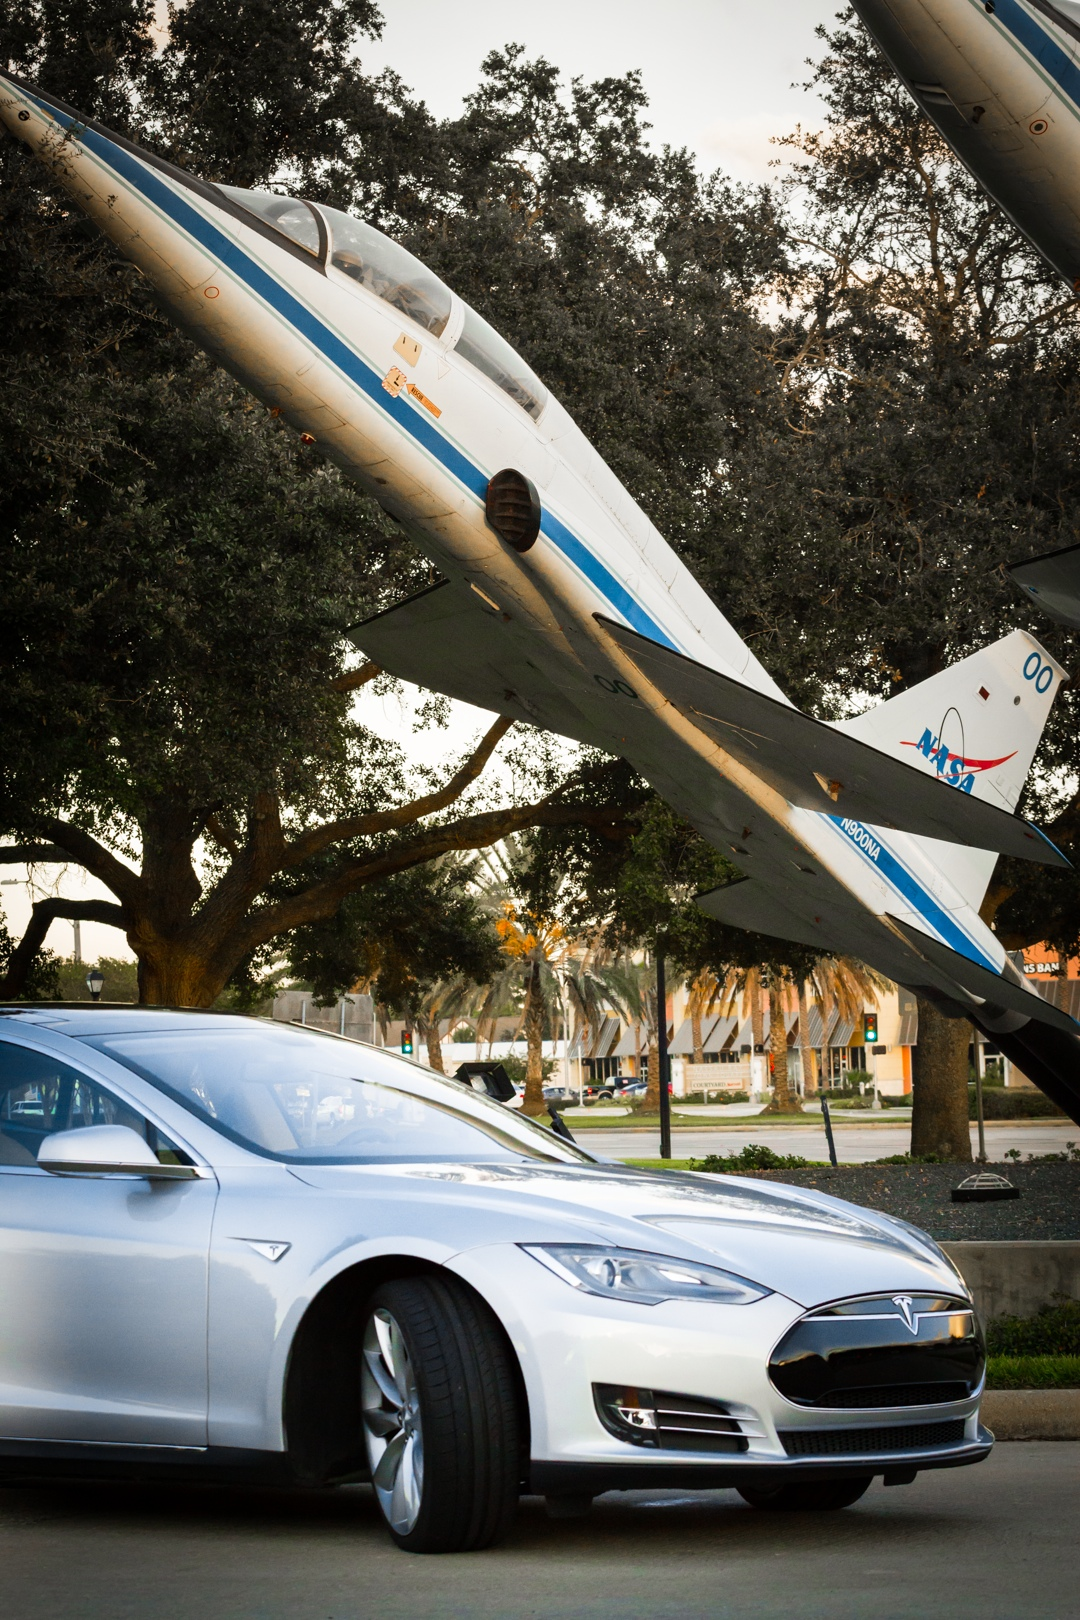 The Model S is quick, but not quite as quick as one of NASA's supersonic T-38s.